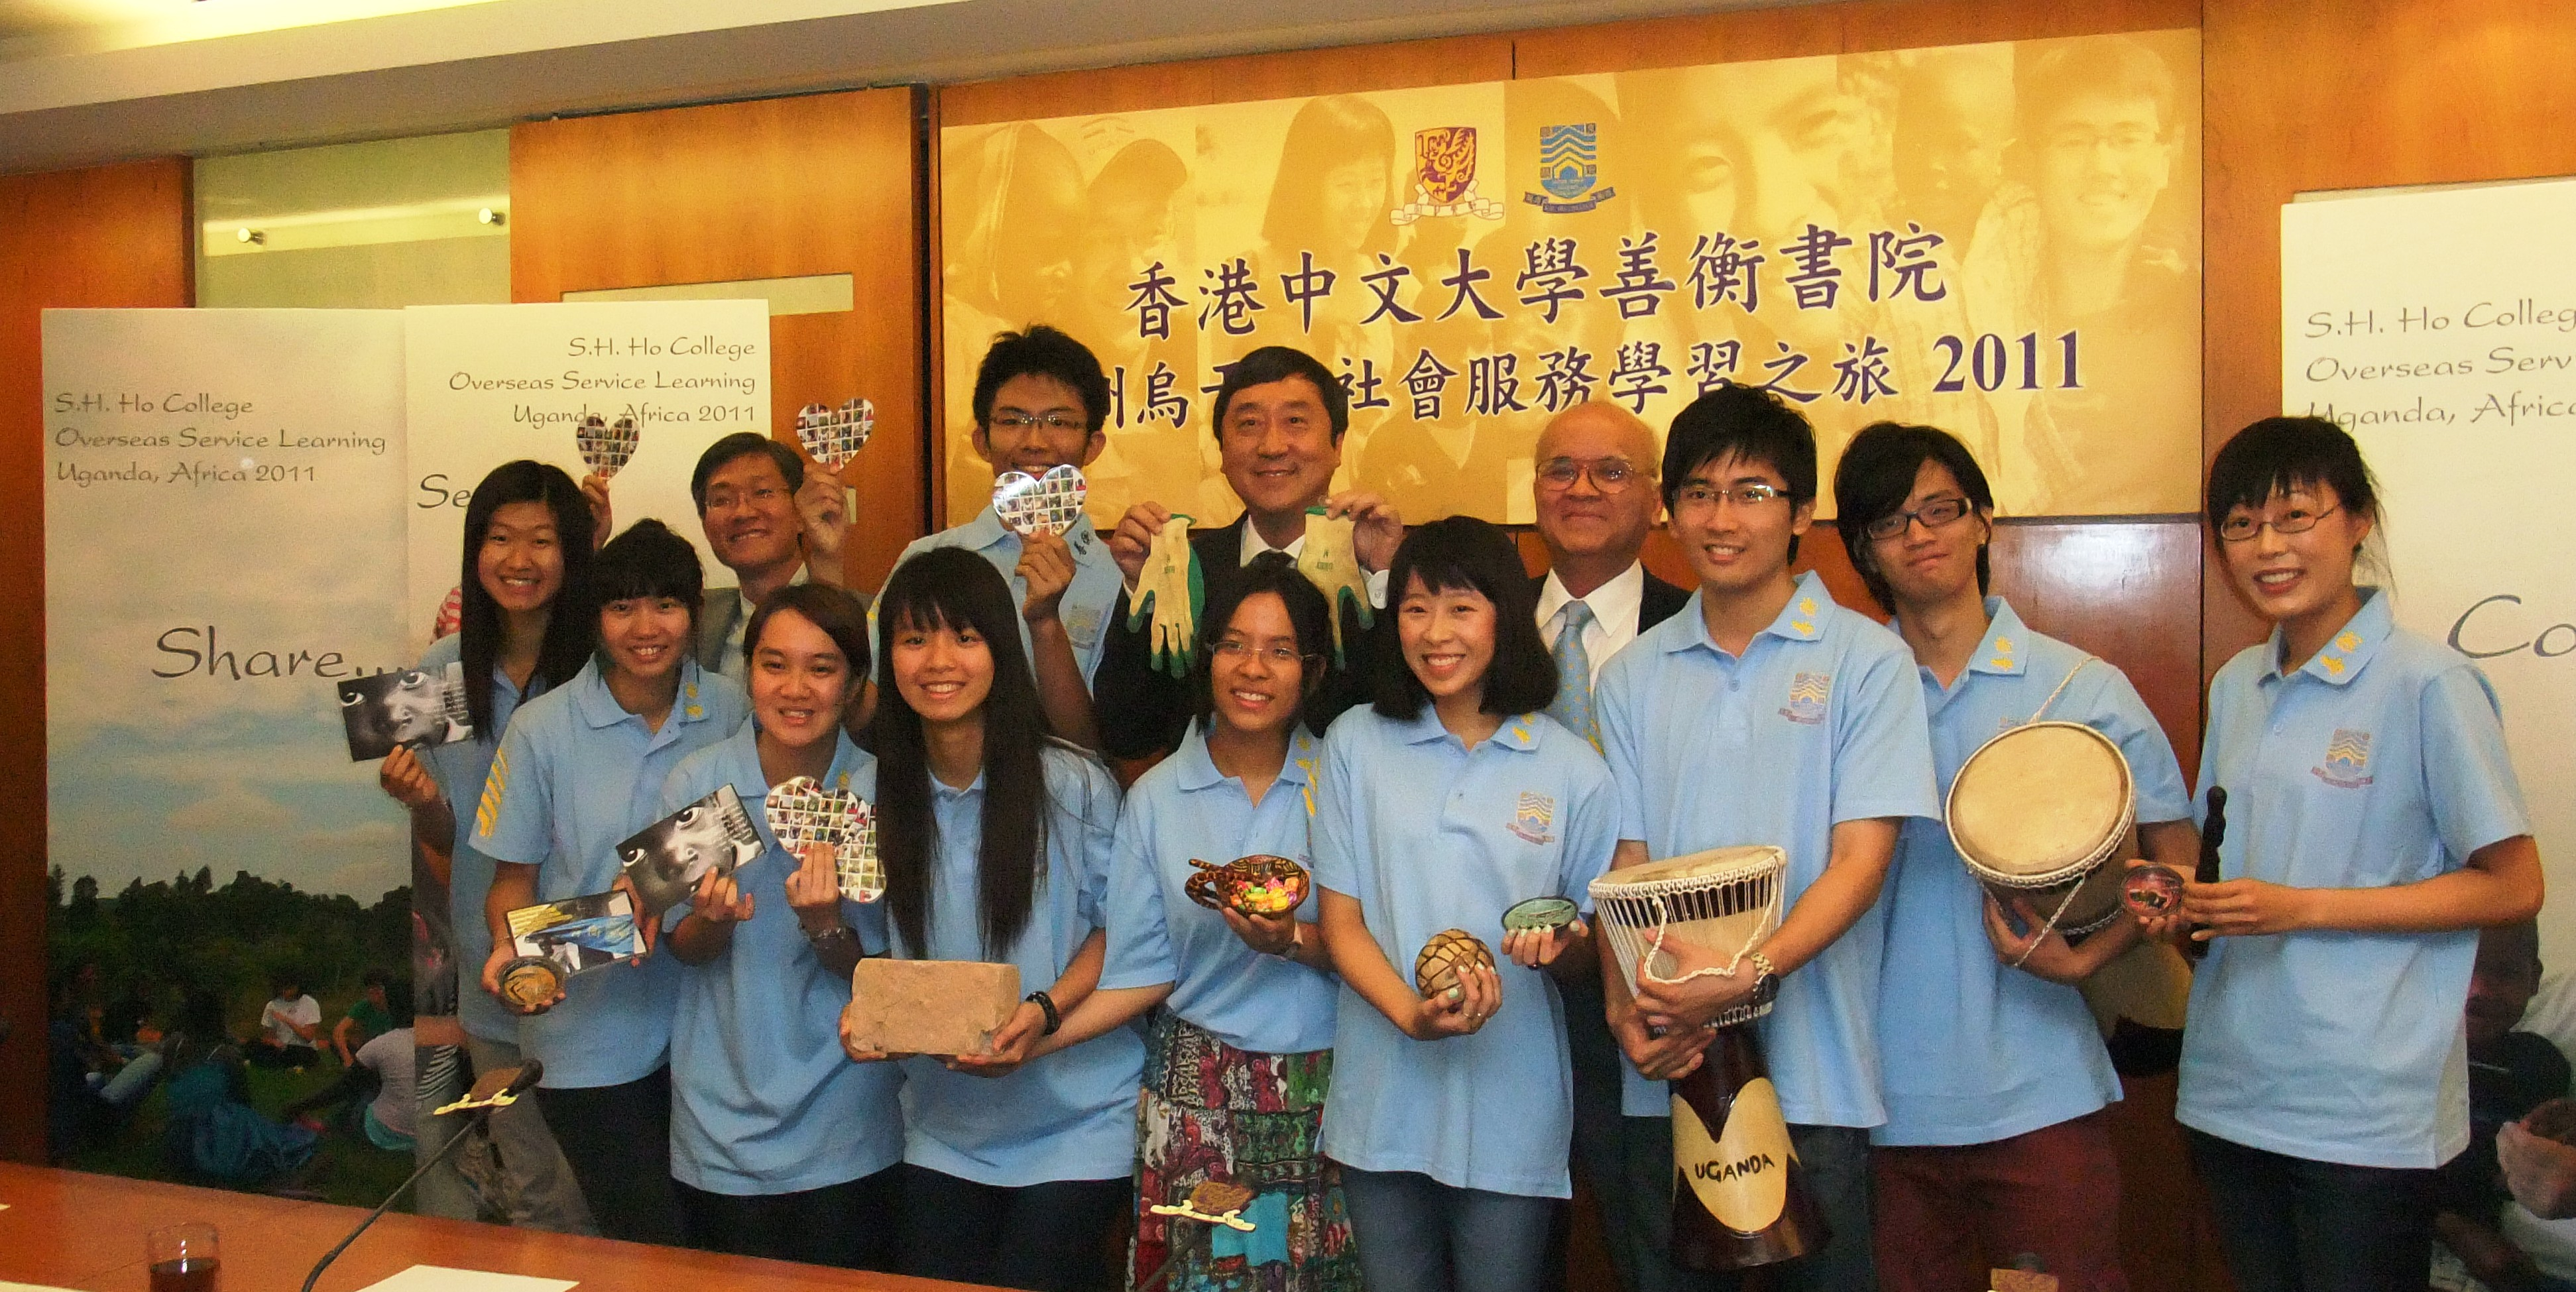 A group photo of Prof. Joseph J.Y. Sung, CUHK Vice-Chancellor (fourth left, second row); Prof. Samuel Sun, Master of S.H. Ho College (fifth left, second row); Prof. Wong Kam-bo, Dean of Students, S.H. Ho College (second left, second row), and students joining the Uganda trip.